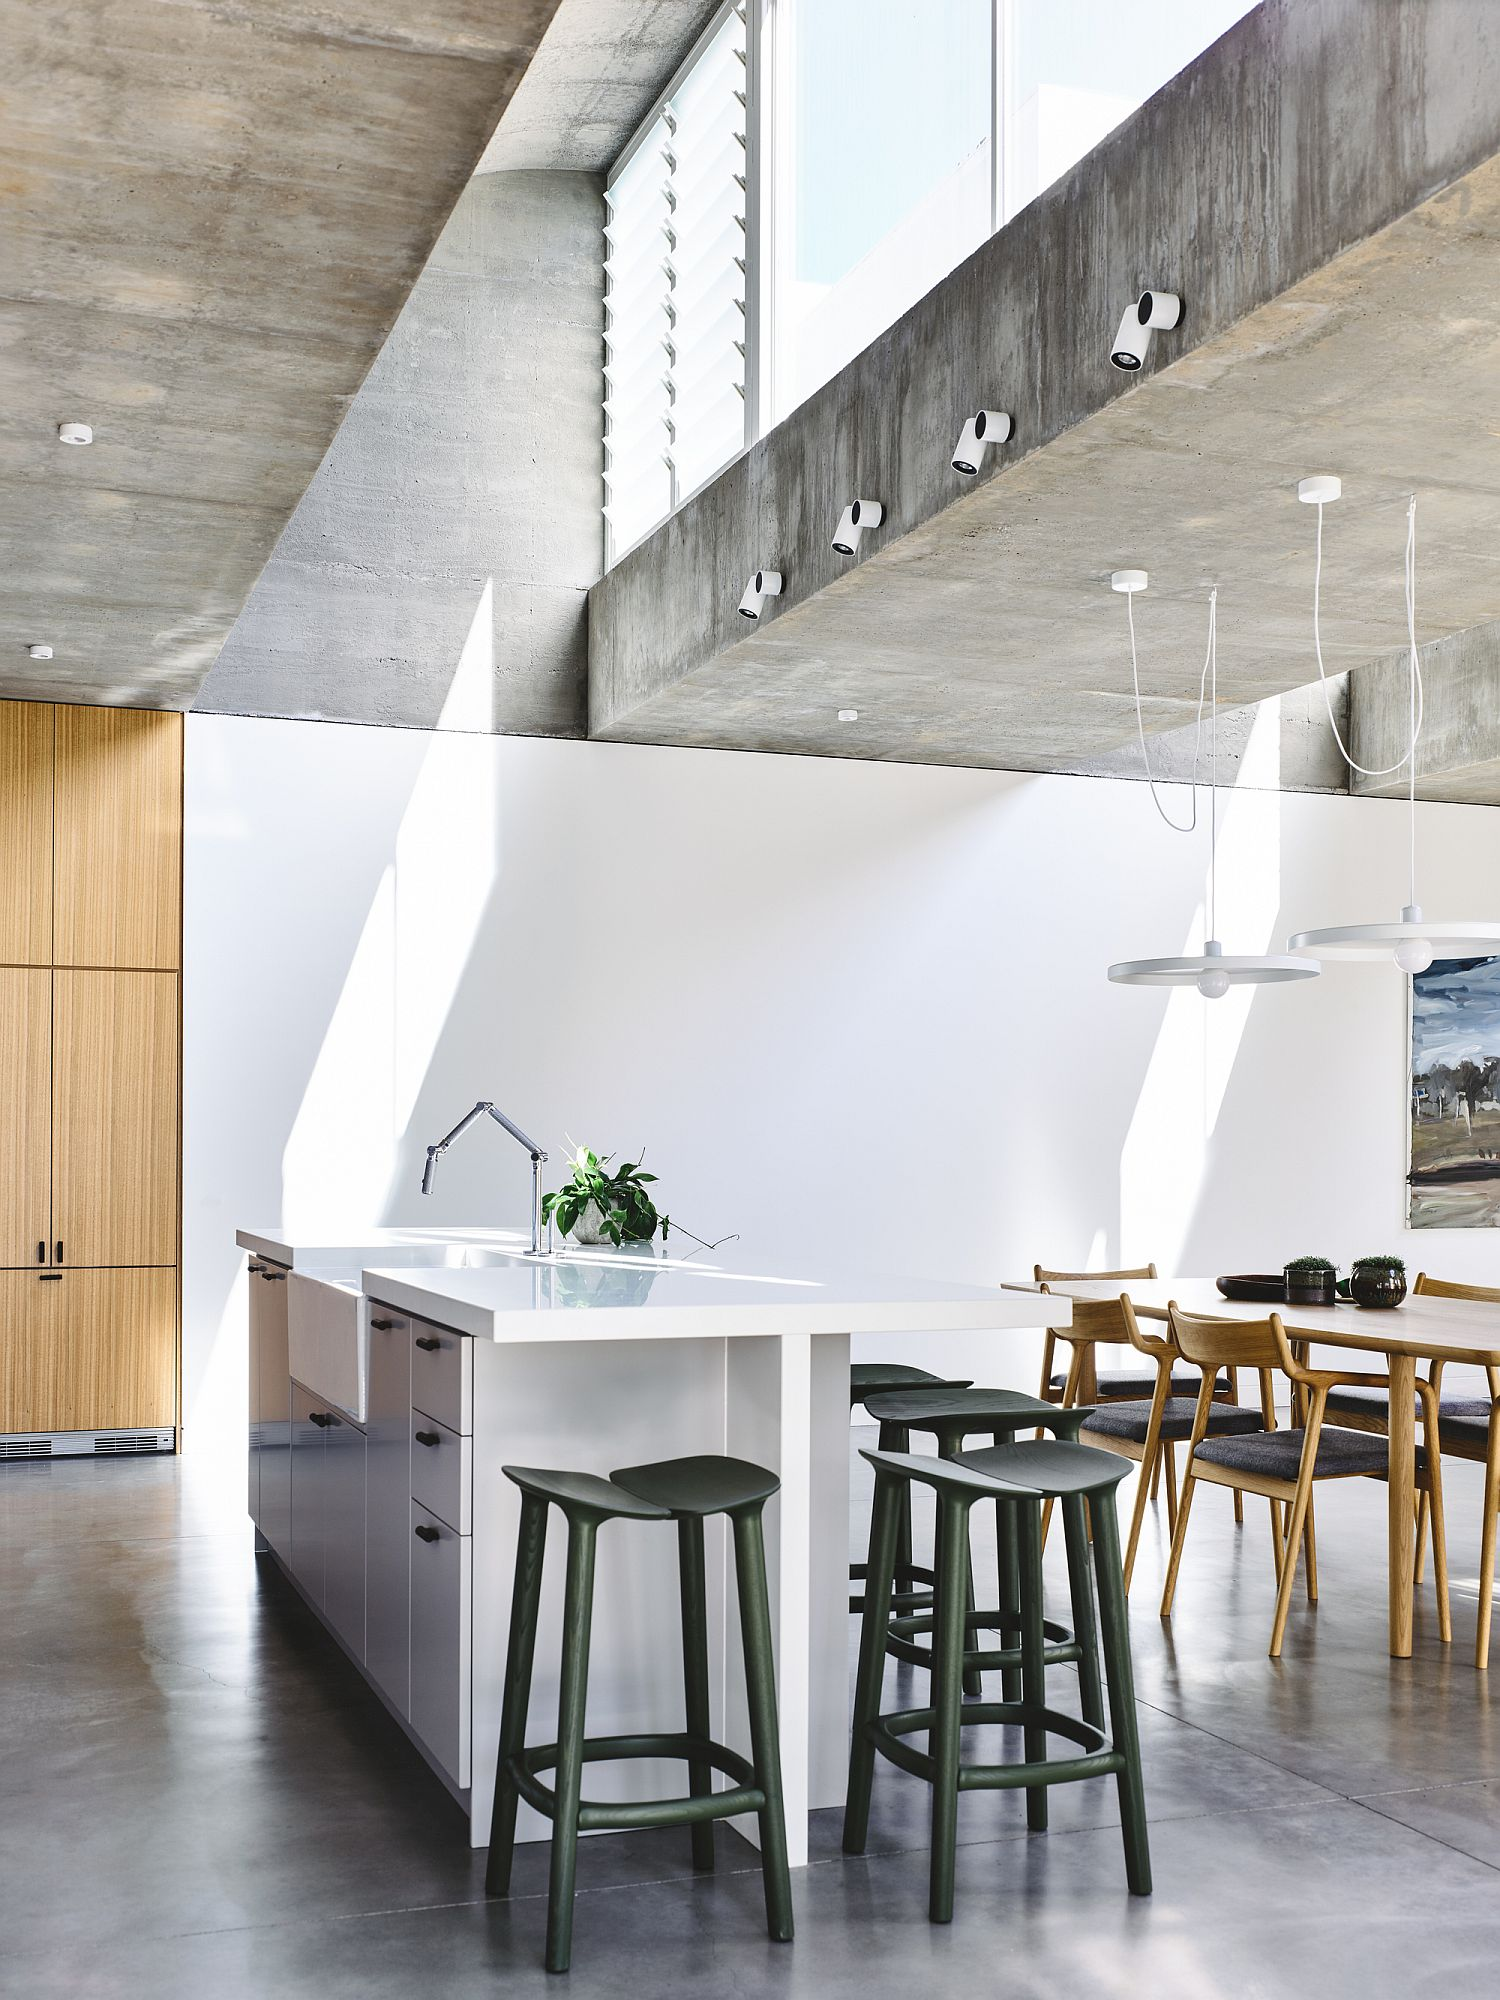 Polished concrete floor and exposed concrete ceilings give the interior a minimal appeal